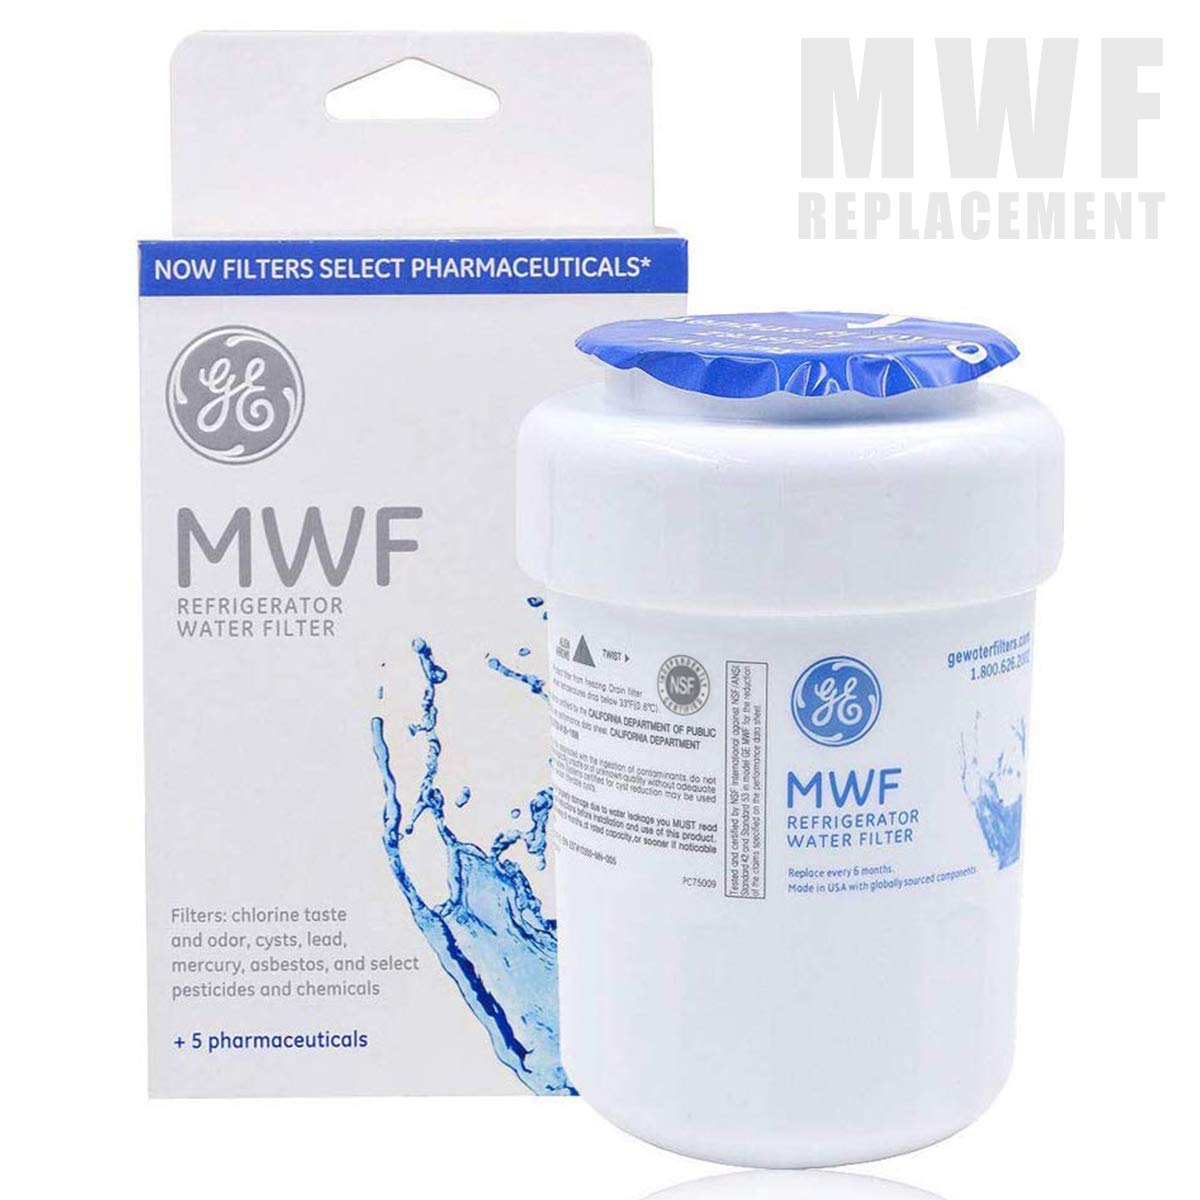 GE MWF Refrigerator Water Filter Cartridge, Replacement for GE Smartwater MWFP, MWFA, GWF, GWFA - 1 Pack